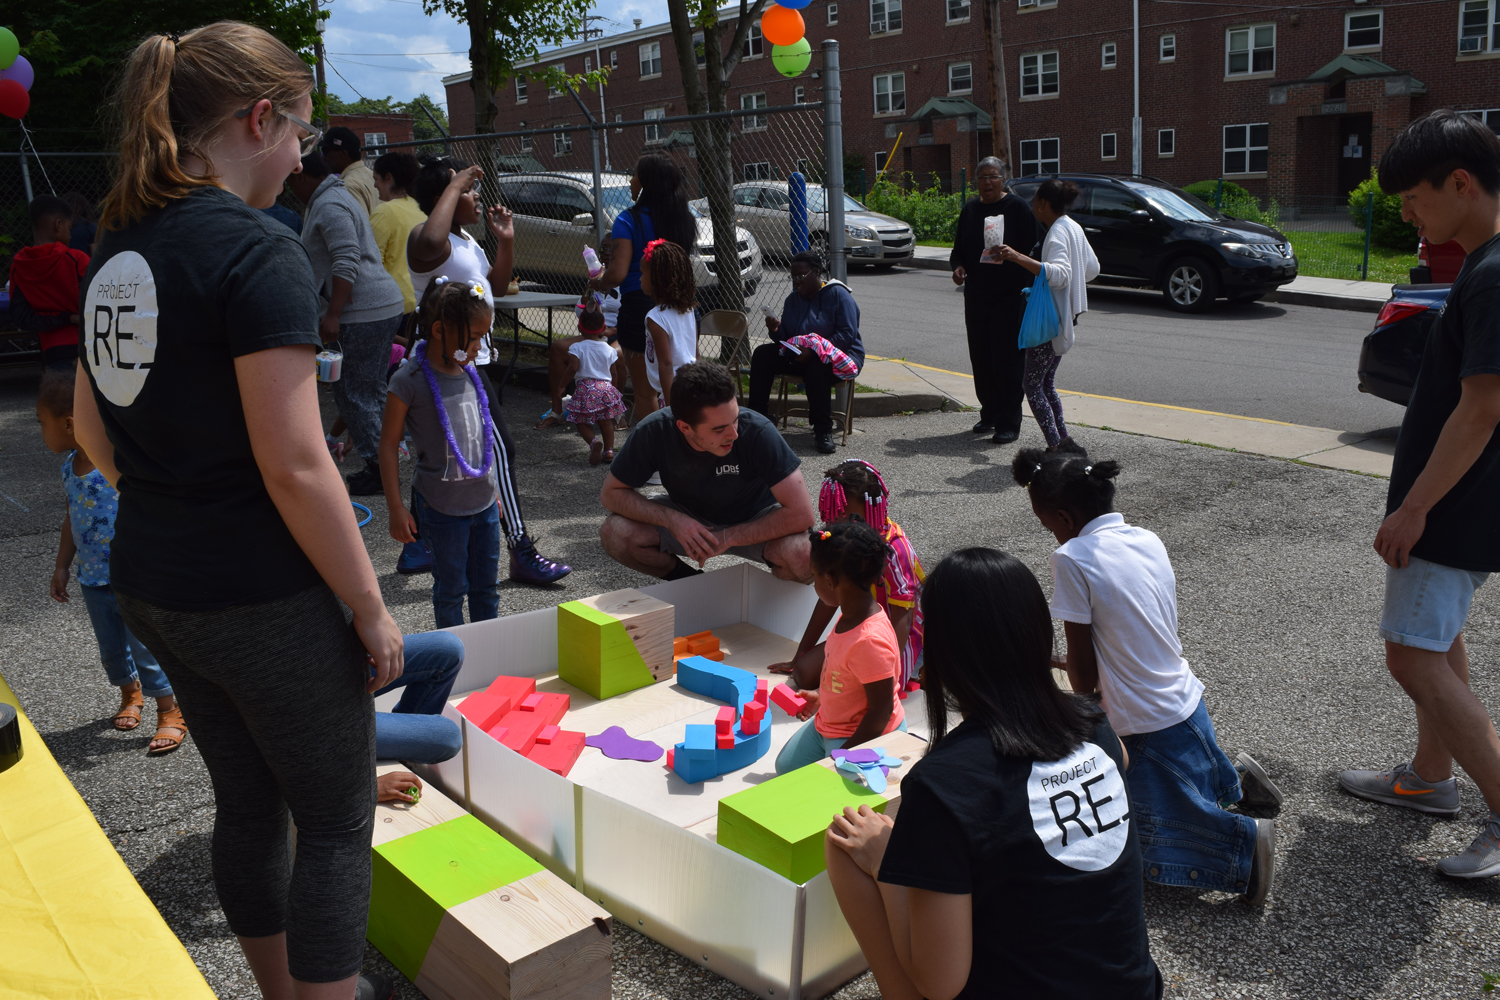 Photograph taken during the Bedford Connect event on June 9, 2017. The image shows children playing inside a block model developed by the studio intended to help facilitate discussion around programming and space-use for the Pop-Up.